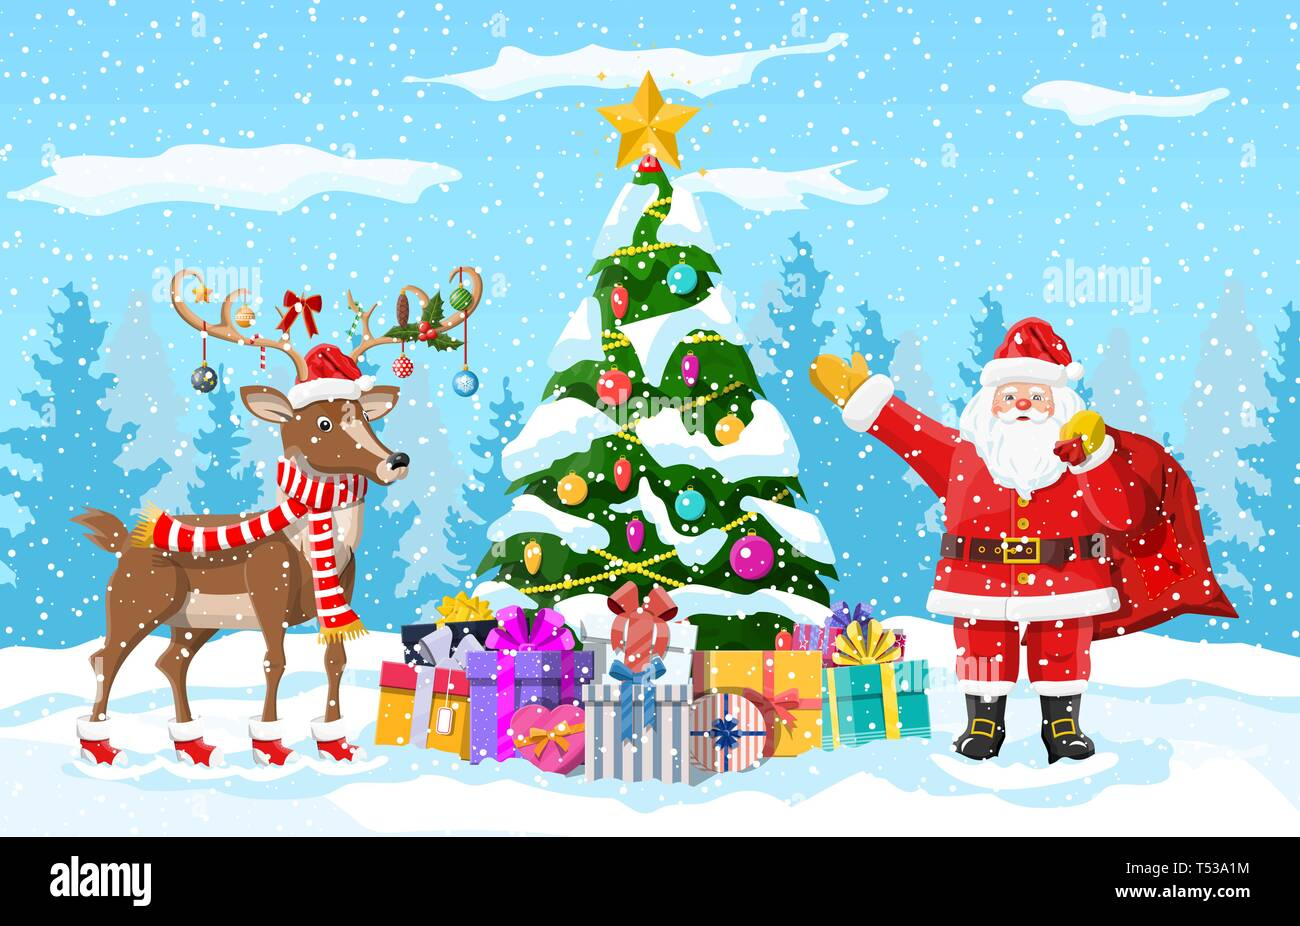 christmas tree background santa claus with reindeer winter landscape with fir trees forest and snowing happy new year celebration new year xmas ho stock vector image art alamy https www alamy com christmas tree background santa claus with reindeer winter landscape with fir trees forest and snowing happy new year celebration new year xmas ho image244092176 html